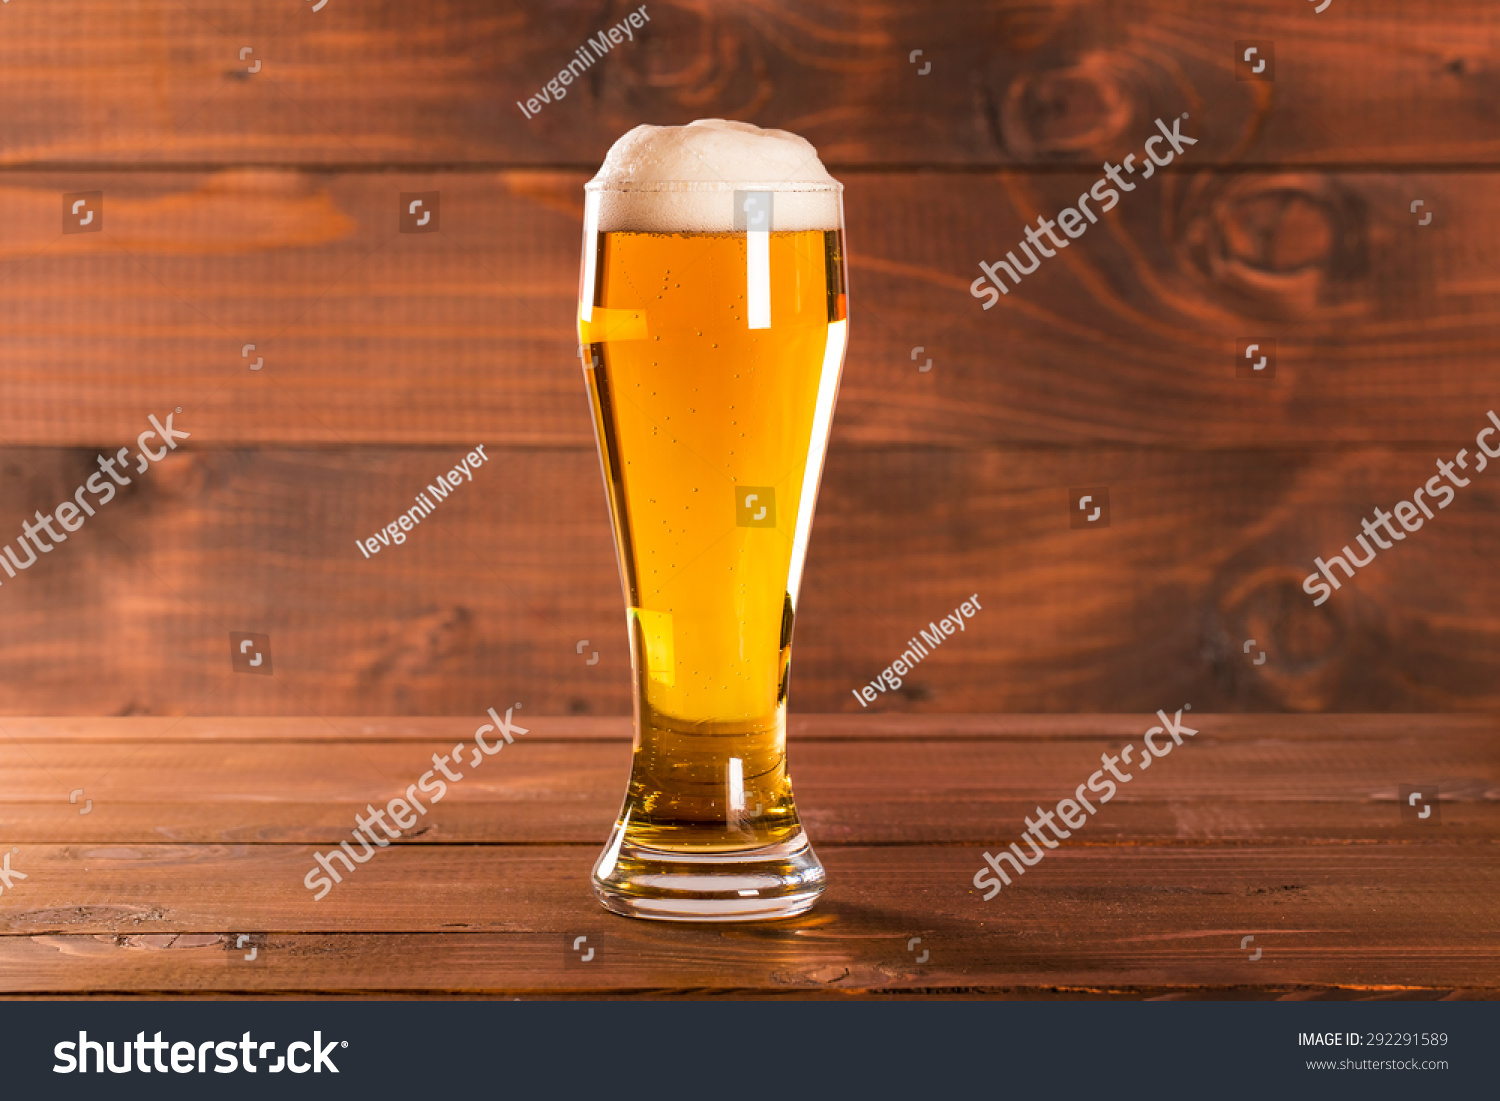 glass beer on wood - photo #13